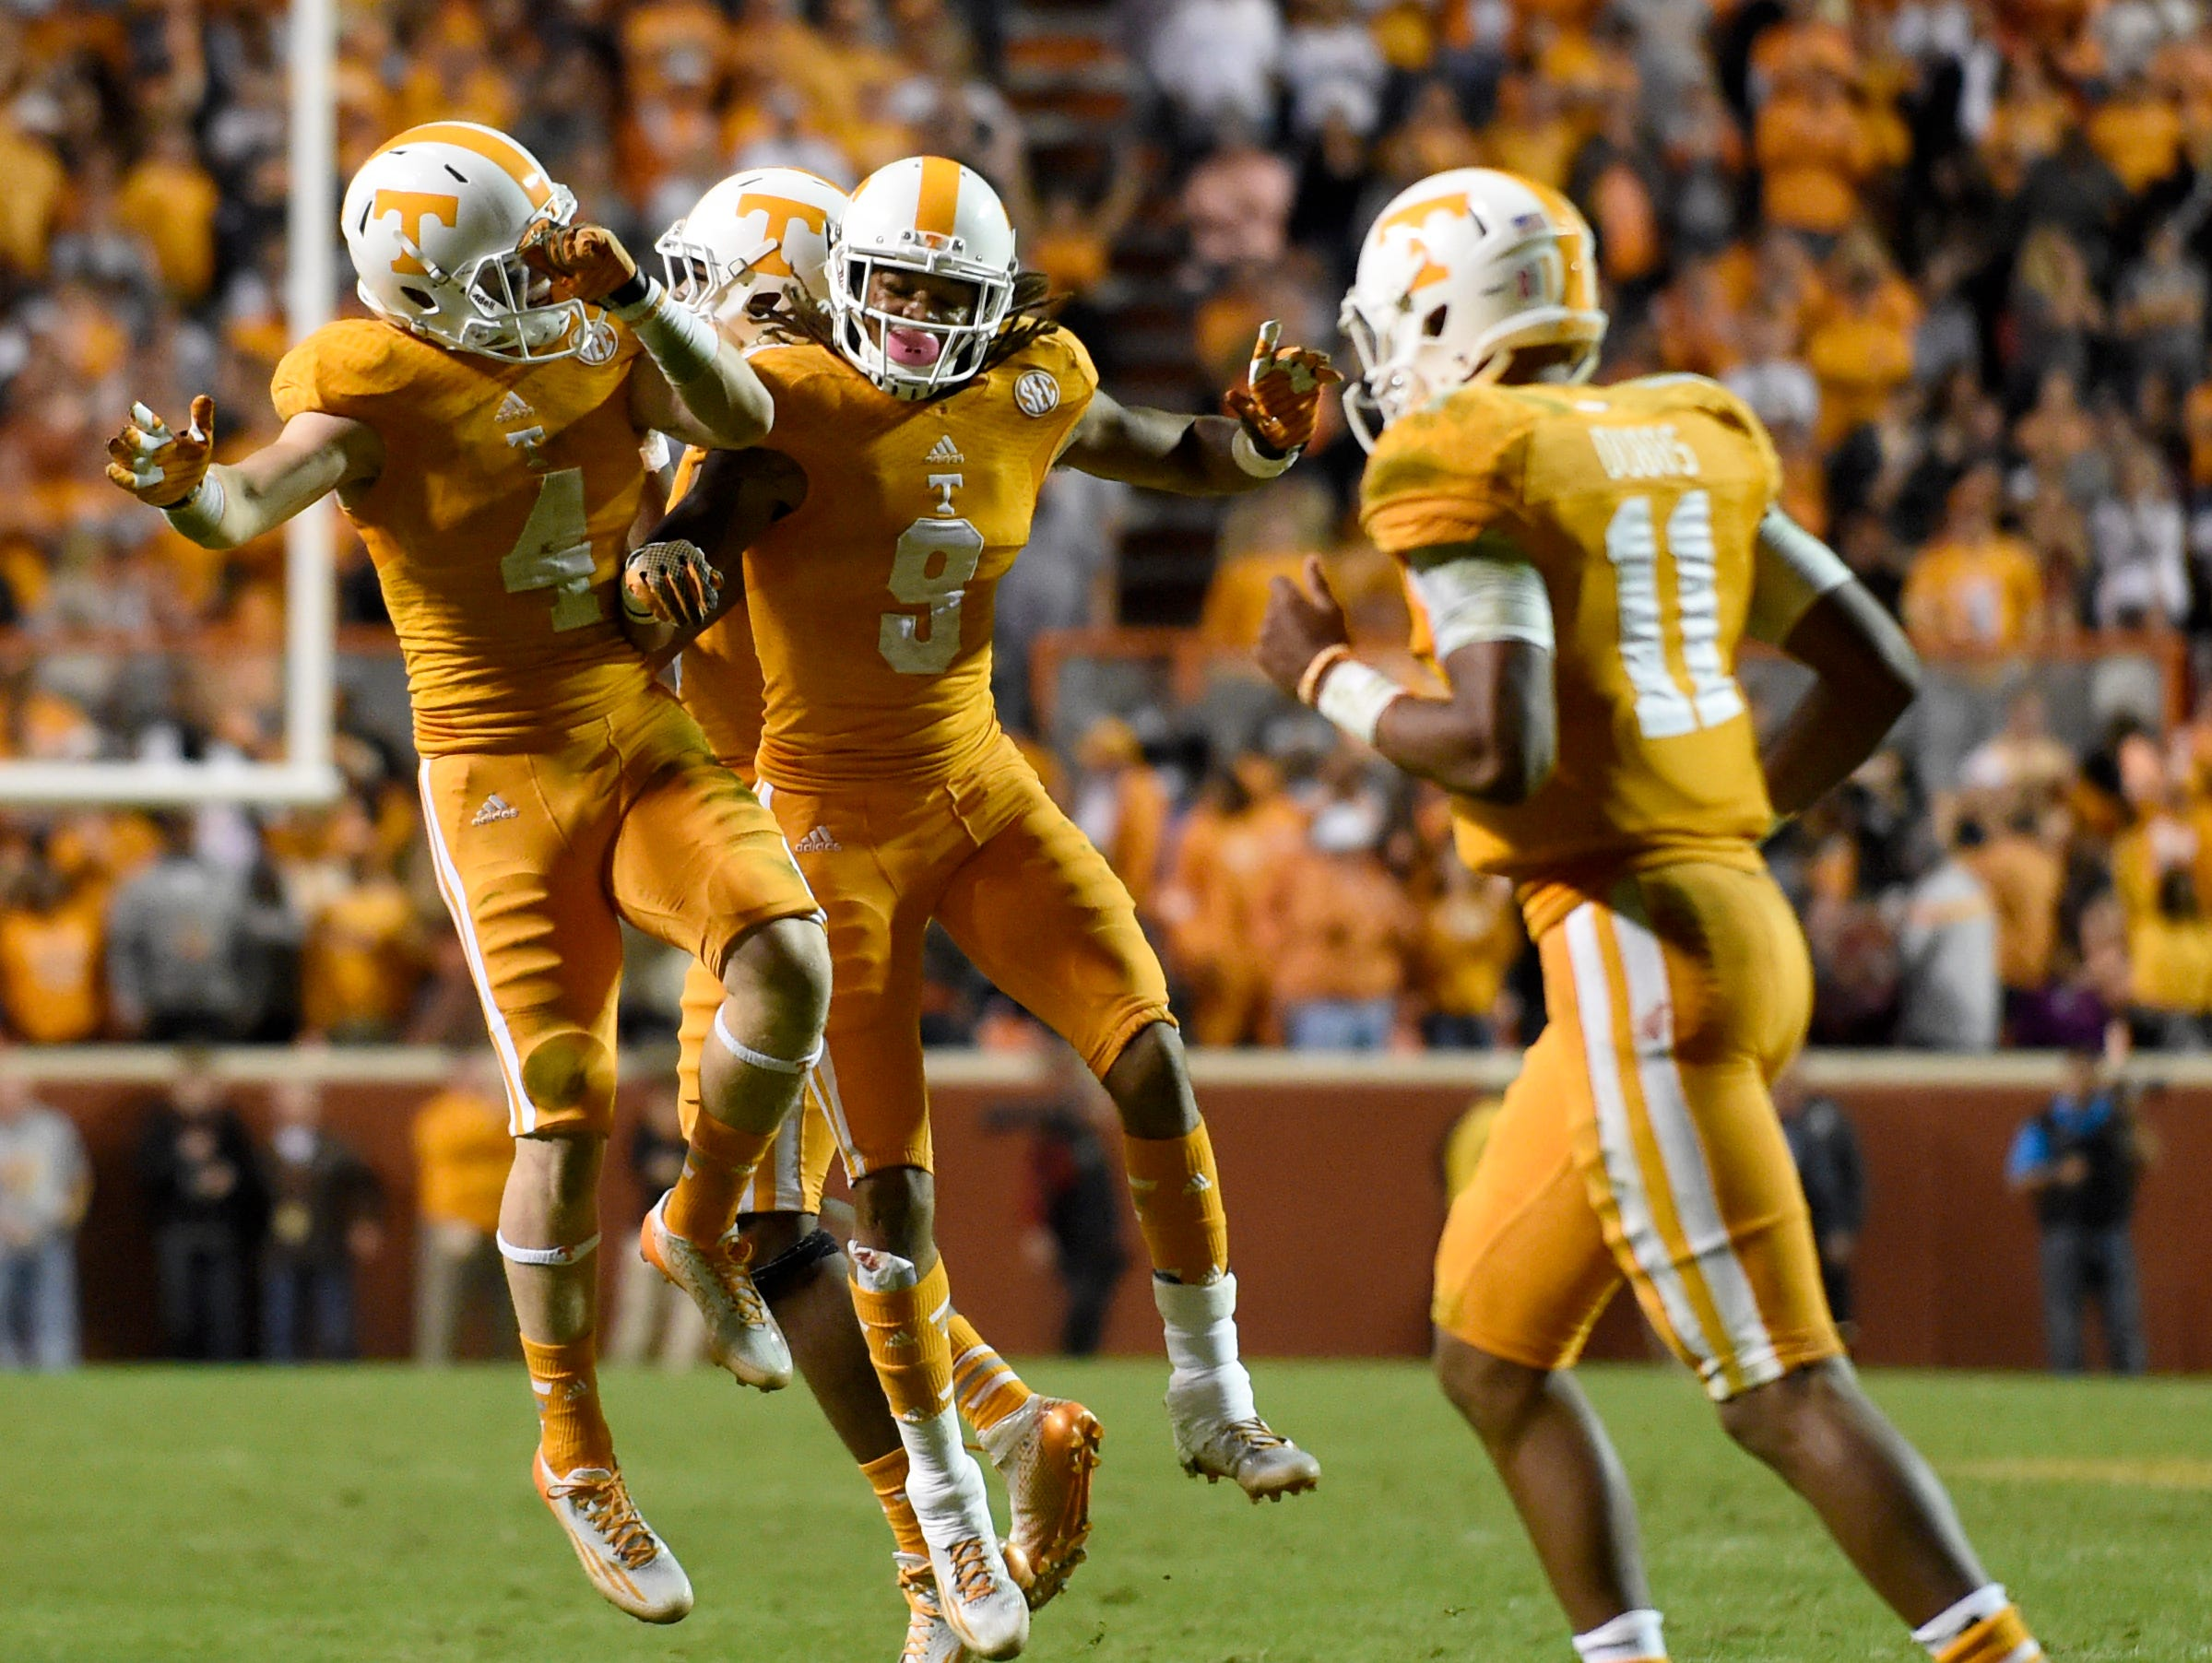 Tennessee wide receiver Von Pearson (9) celebrates his touchdown with Tennessee wide receiver Vic Wharton (4) during the second half at Neyland Stadium, Saturday, Oct.25, 2014 in Knoxville, Tenn.